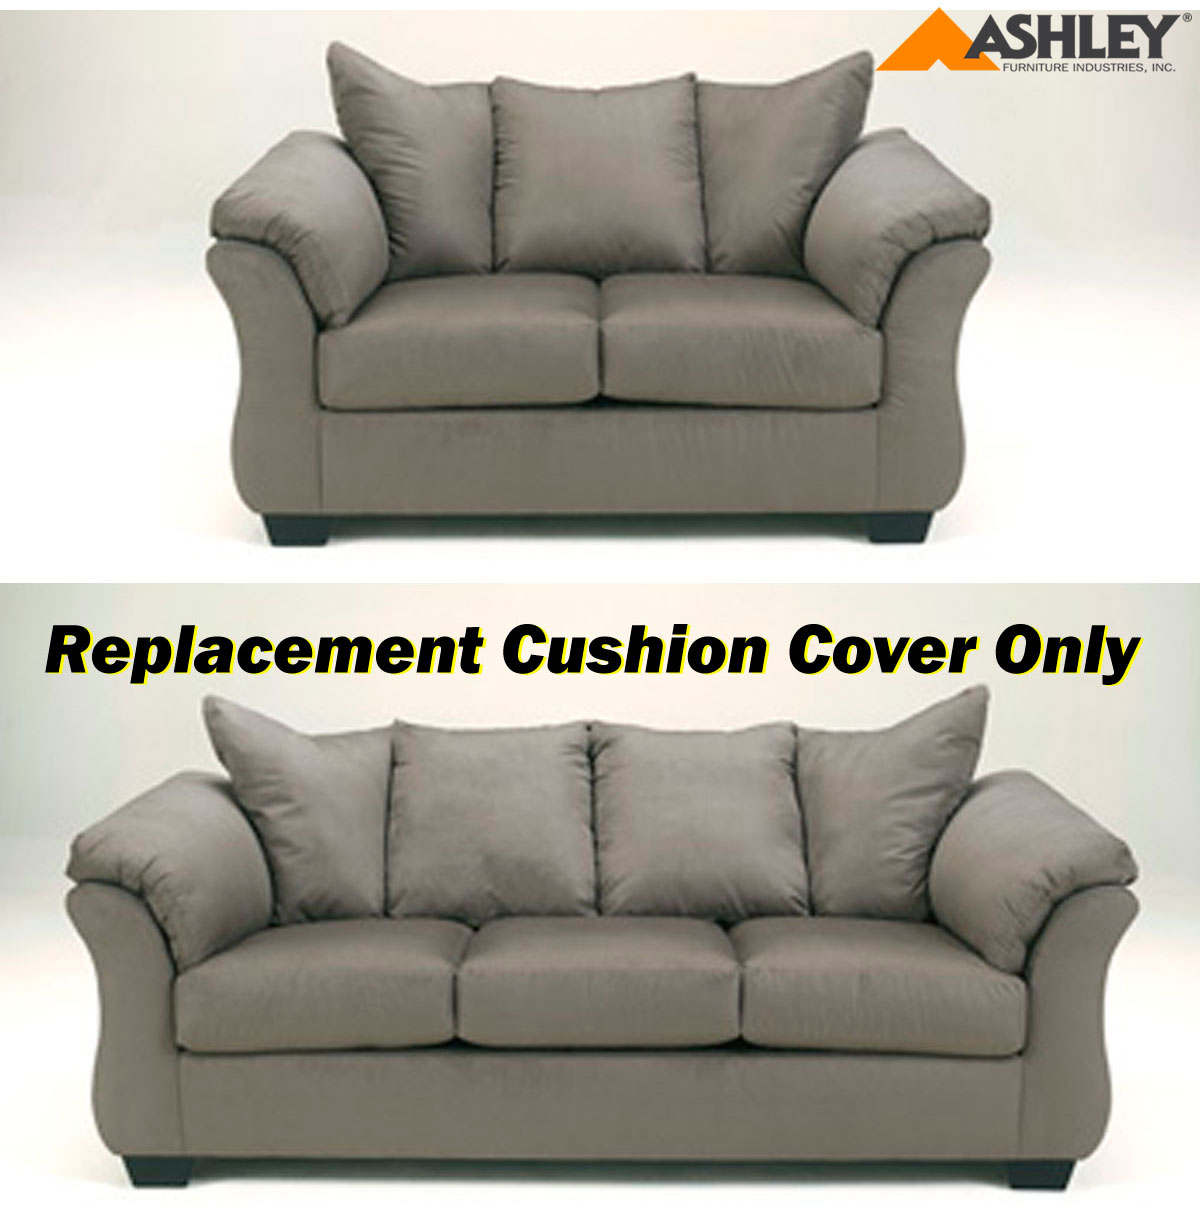 how to replace sofa cushion covers top grain leather reclining ashley darcy replacement cover only 7500538 or